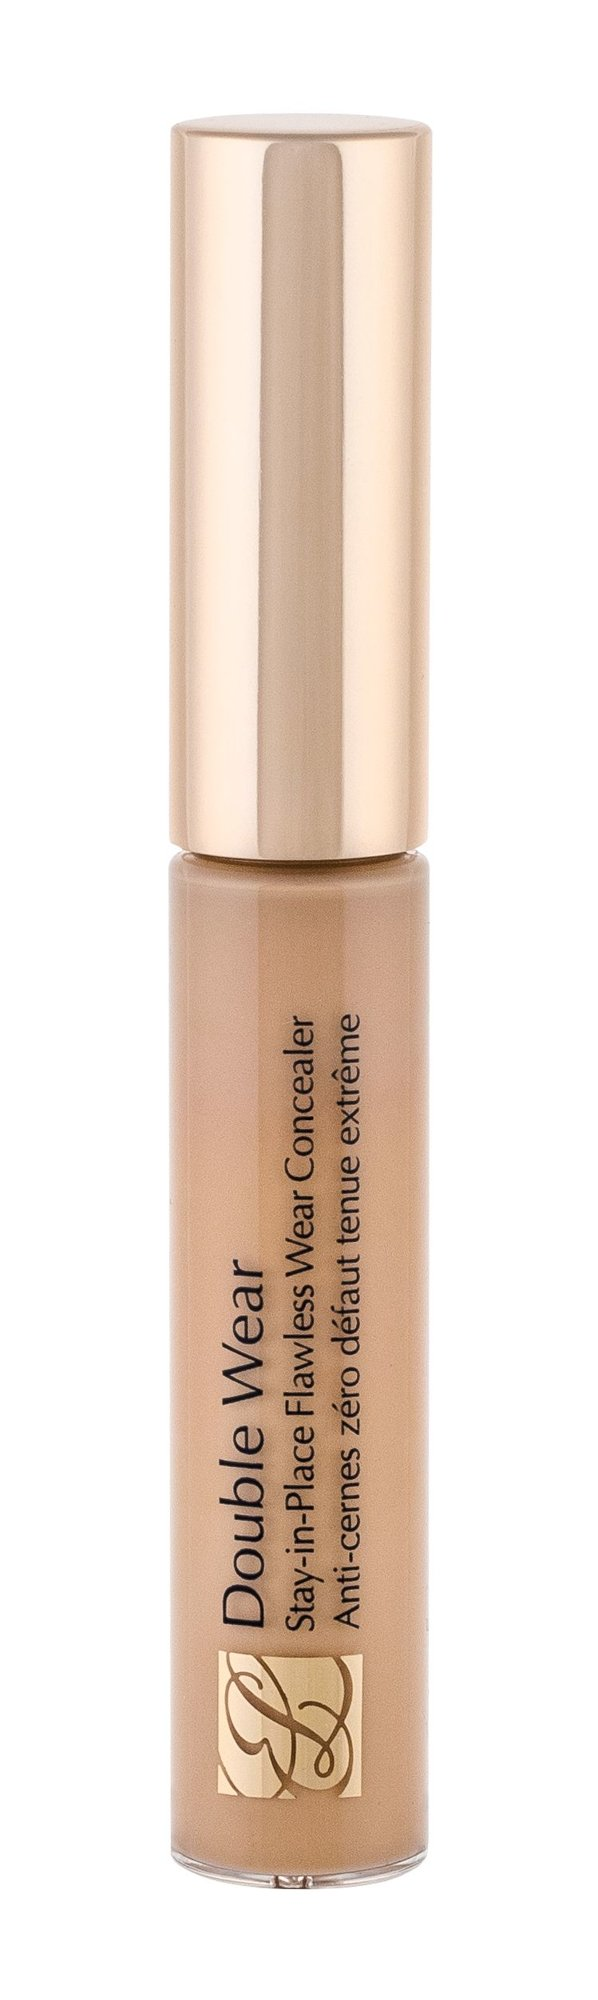 Estée Lauder Double Wear Corrector 7ml 3W Medium (Warm)